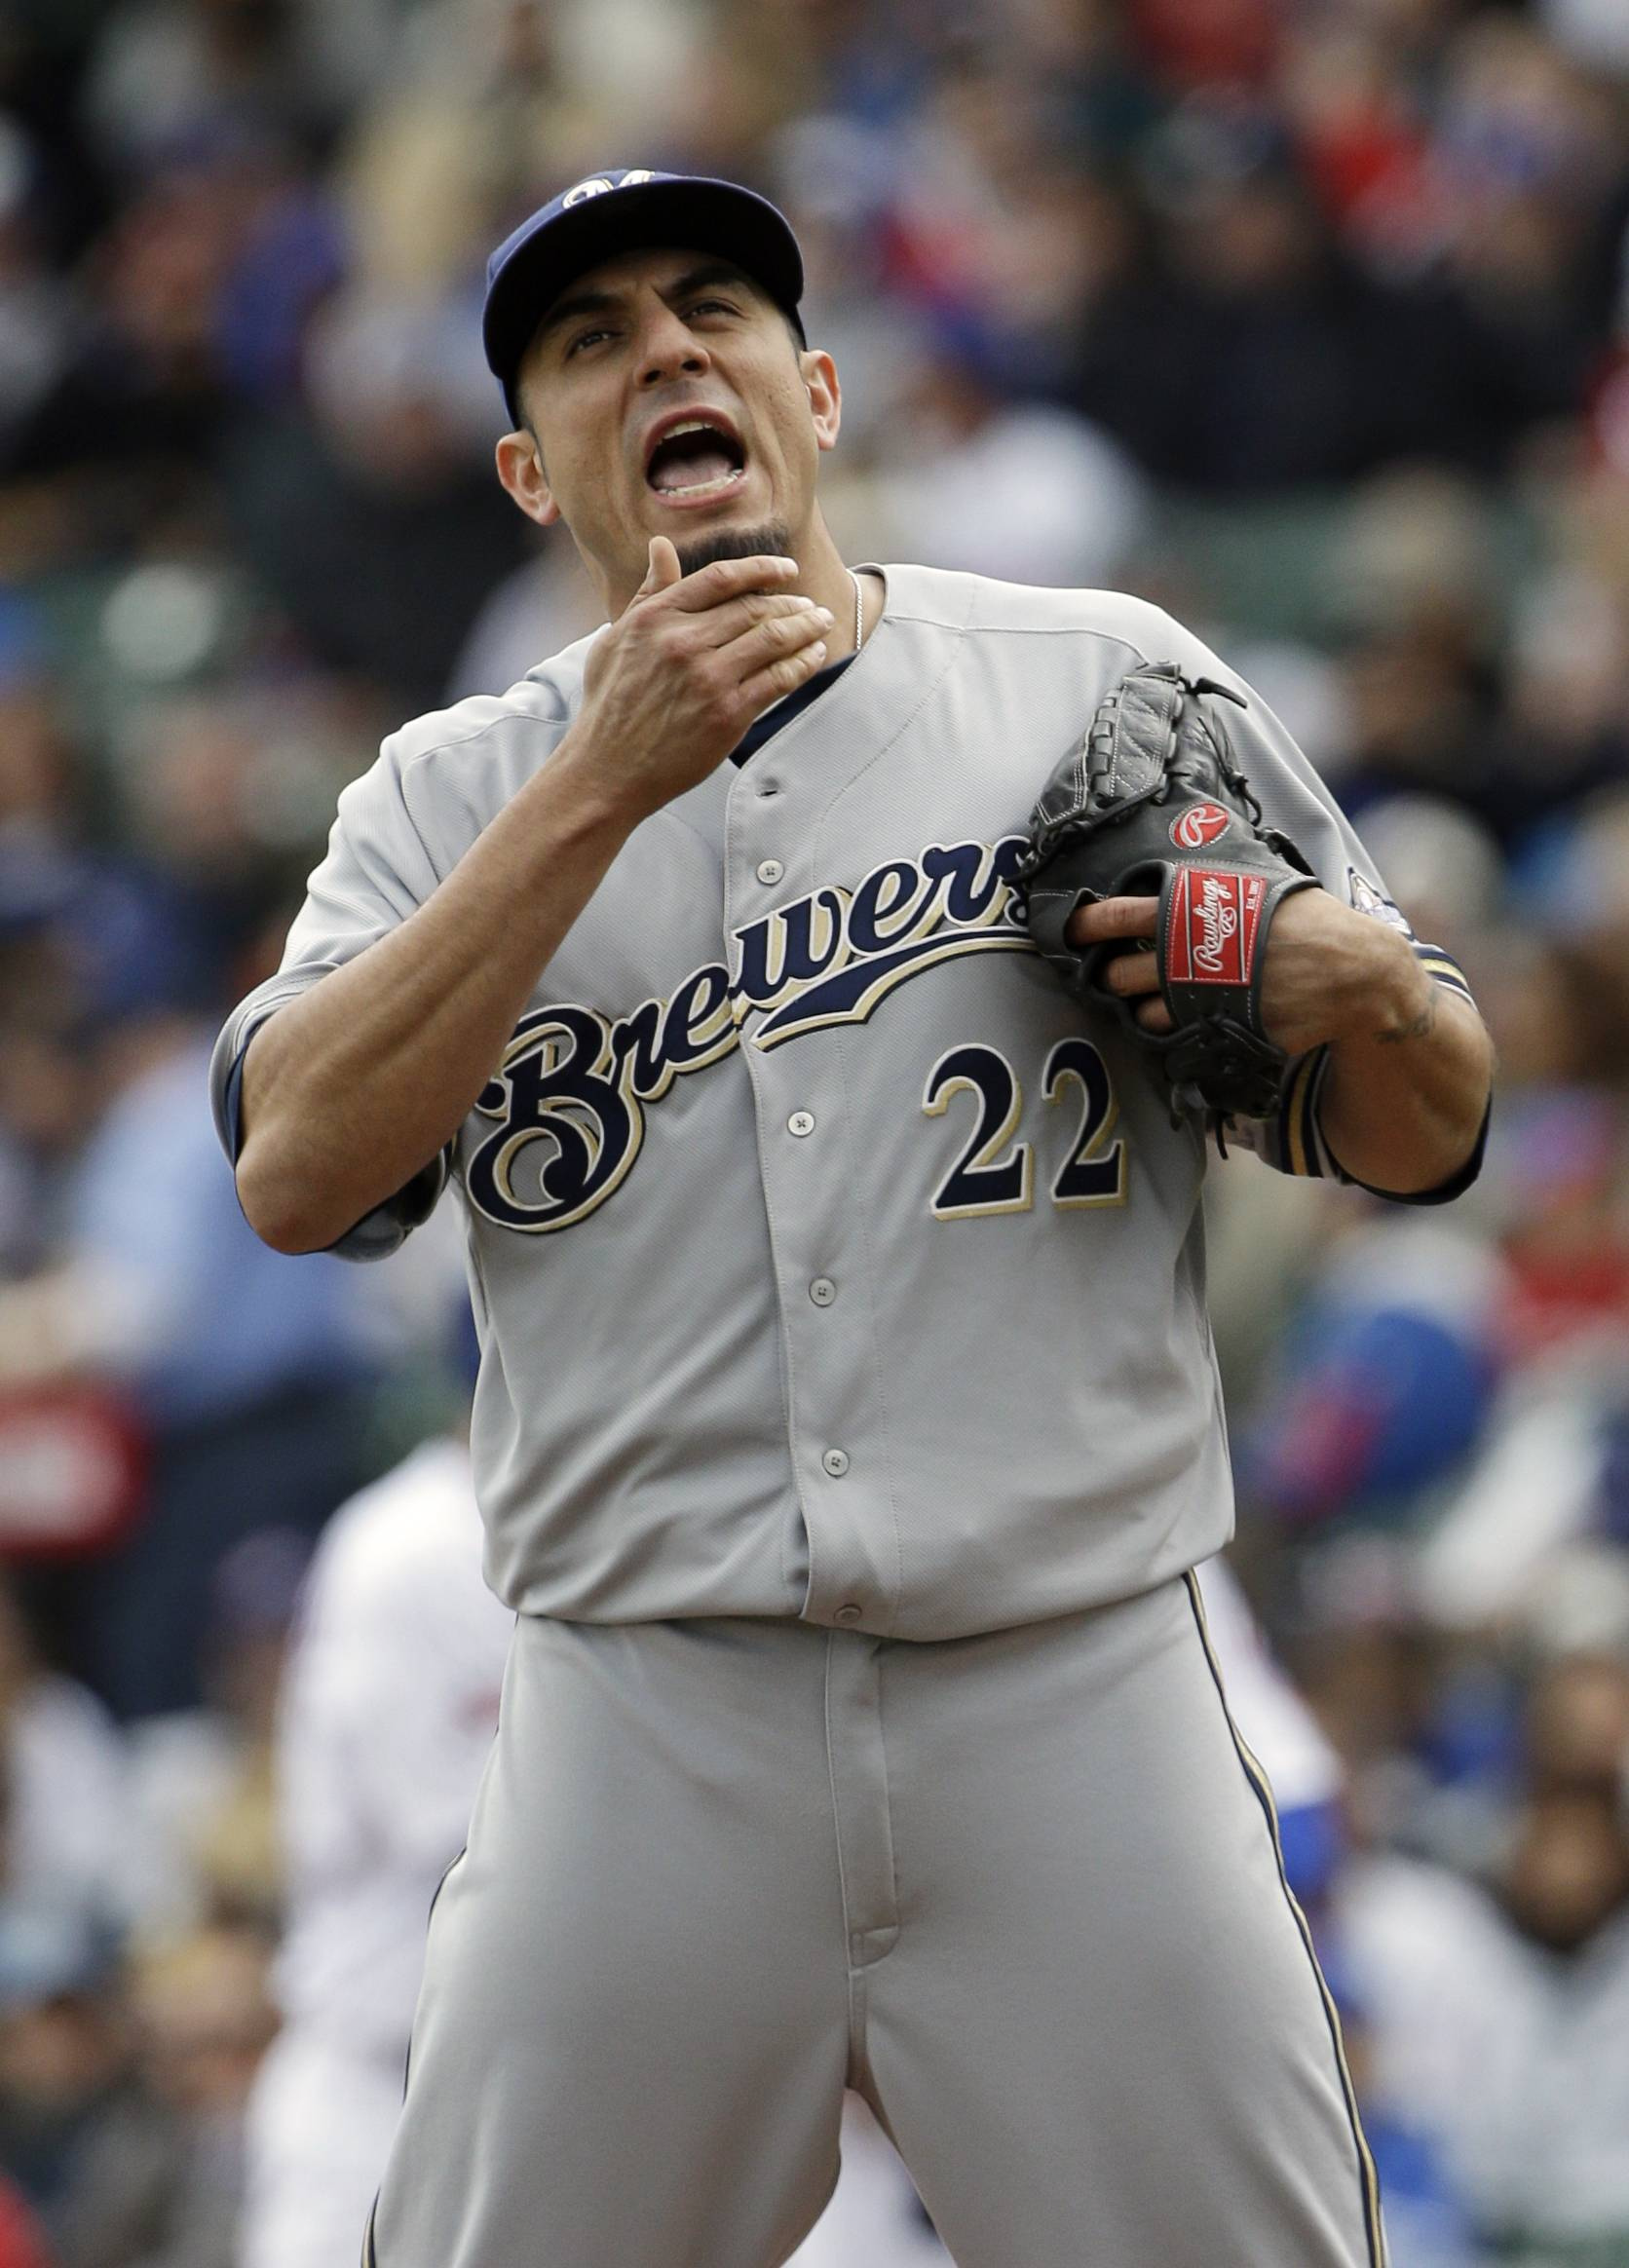 Ex-Cub and Brewers starter Matt Garza fell to 2-4 with an ERA of 4.83. The Cubs exploited Garza's trouble throwing the ball after fielding it to score three times in the first inning.